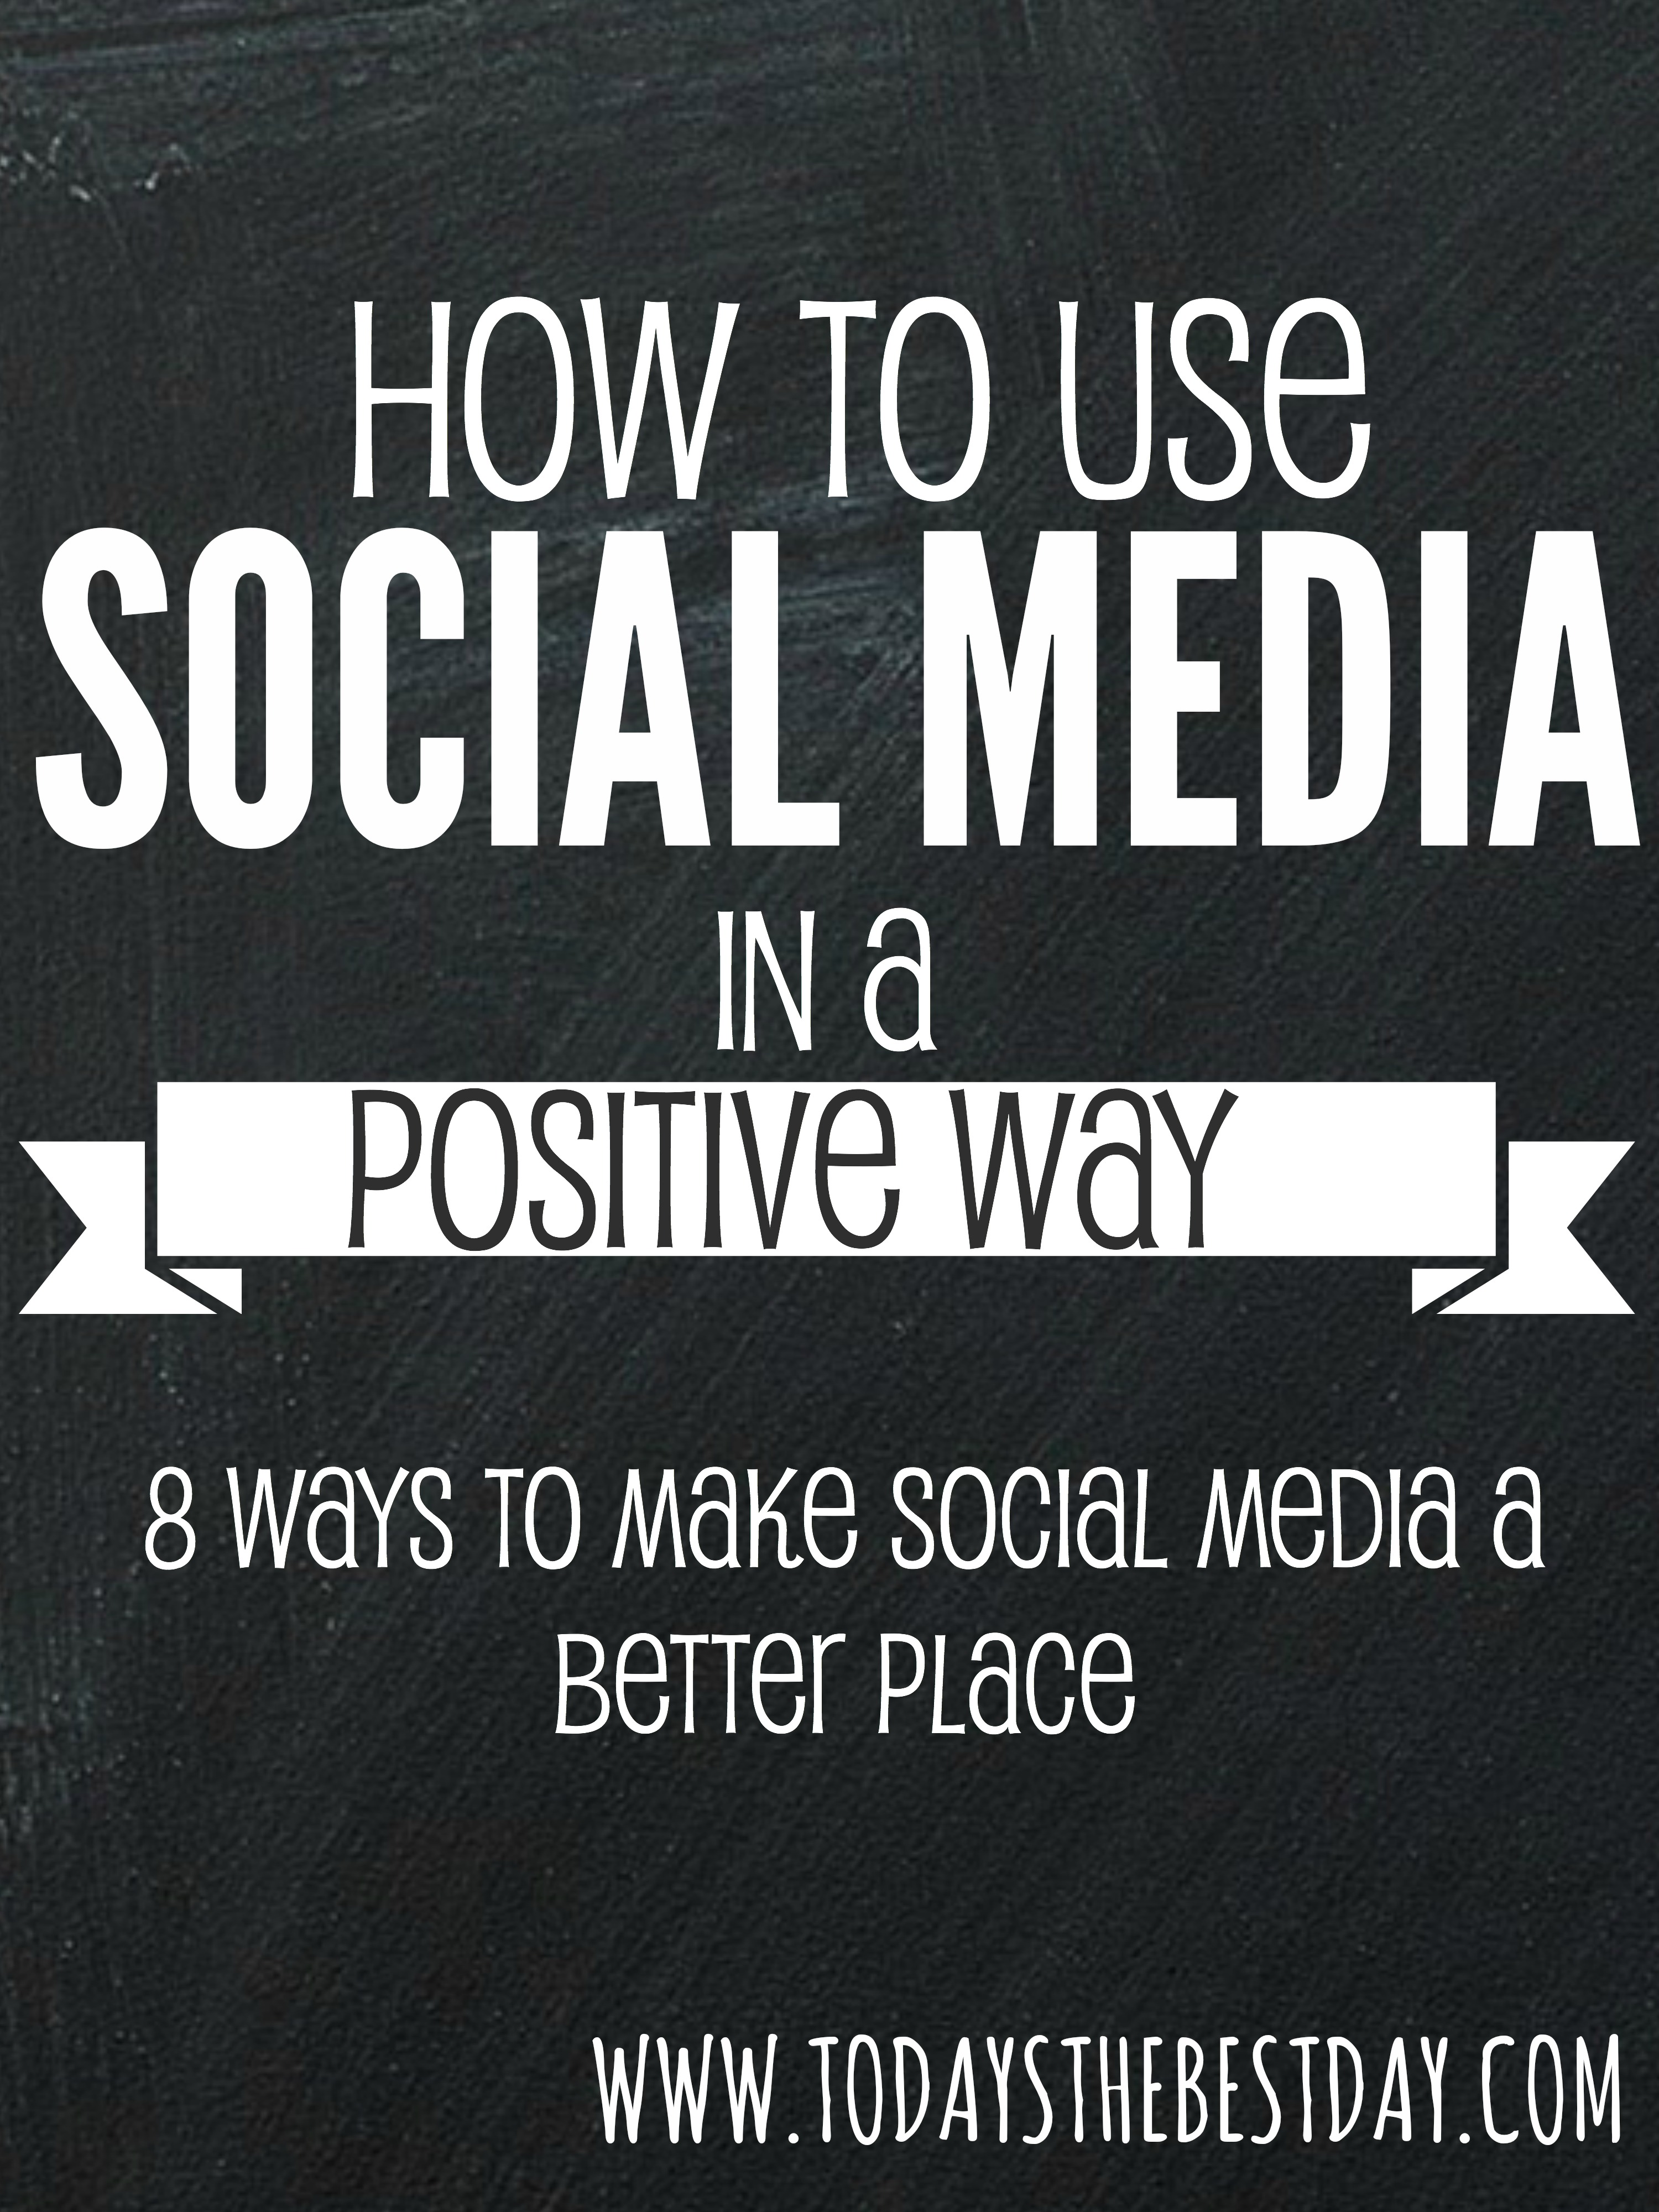 How To Use Social Media In A Positive Way - Today's the Best Day